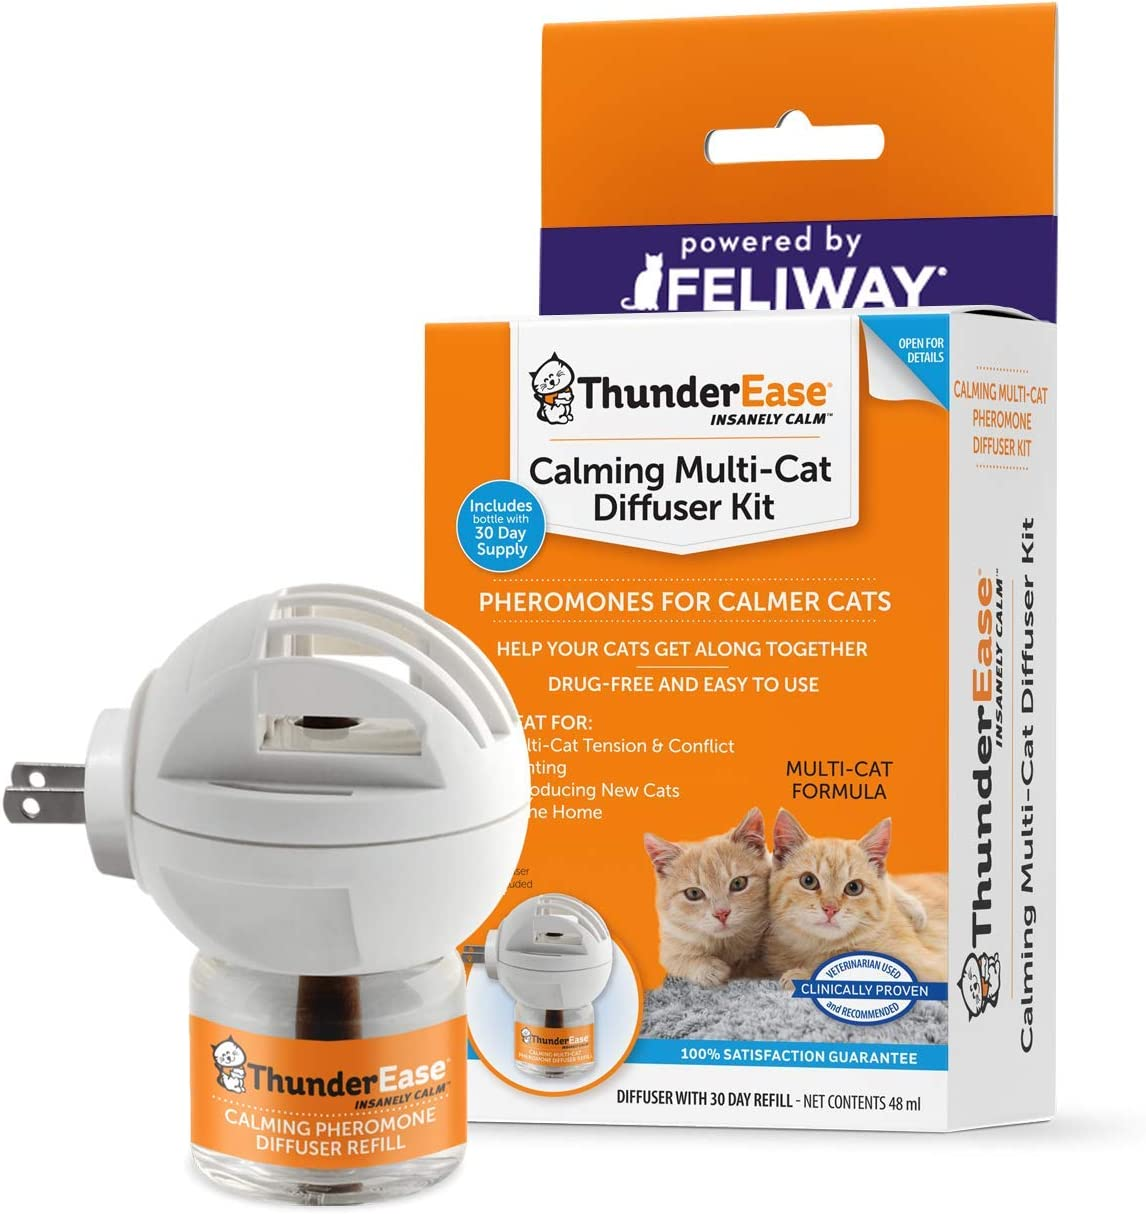 ThunderEase Multicat Calming Pheromone Diffuser Kit | Powered by FELIWAY | Reduce Cat Conflict, Tension and Fighting